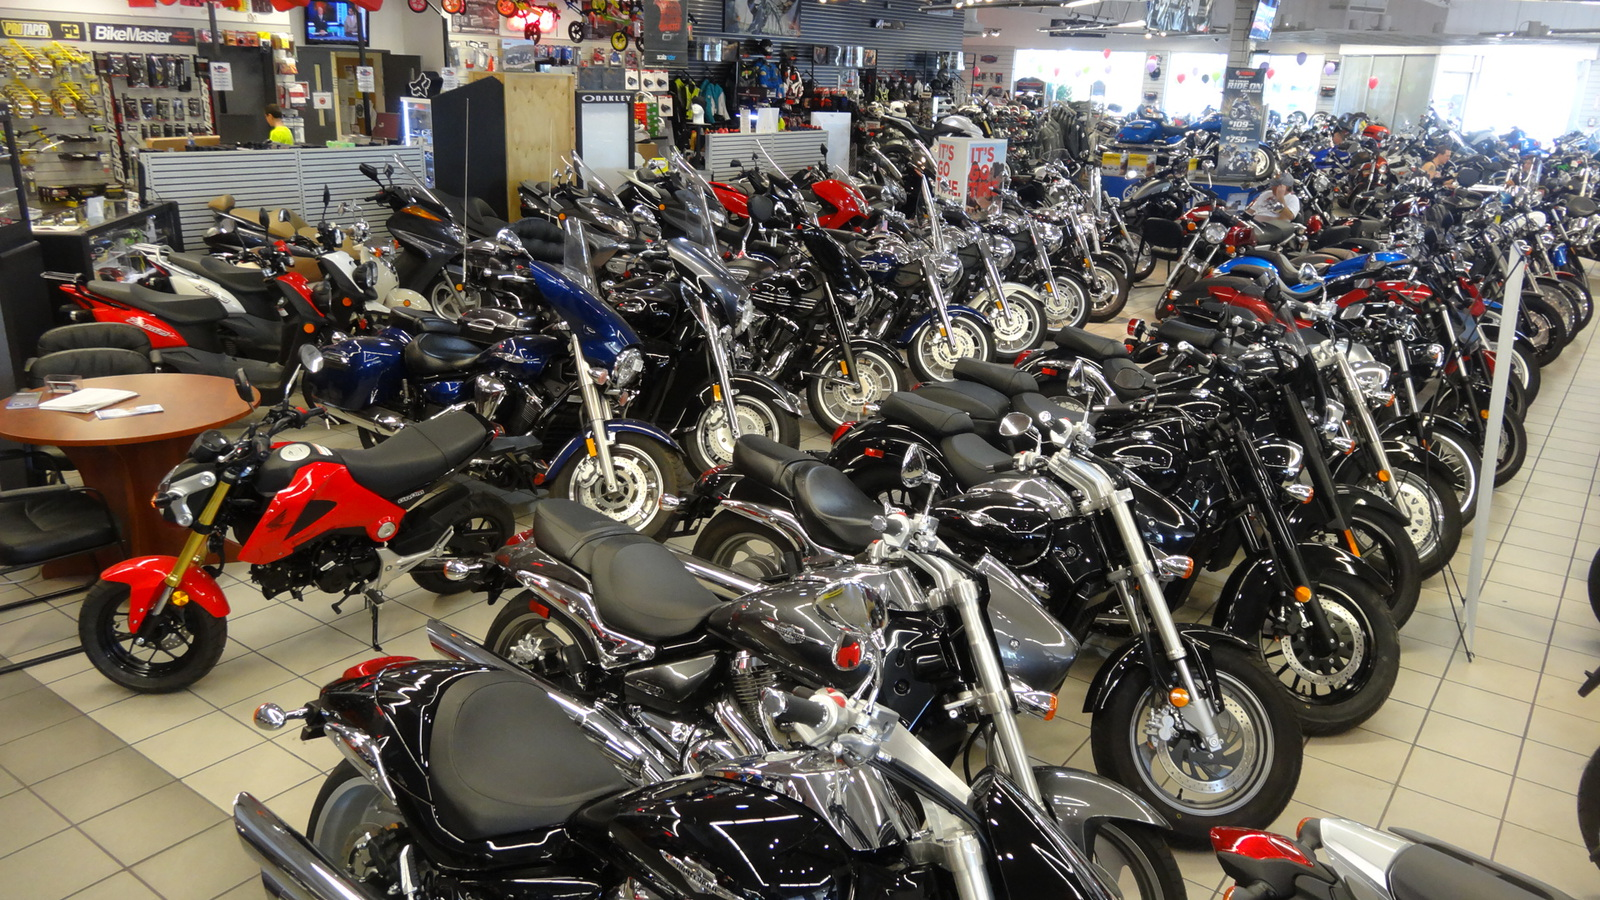 motorcycles stores near me